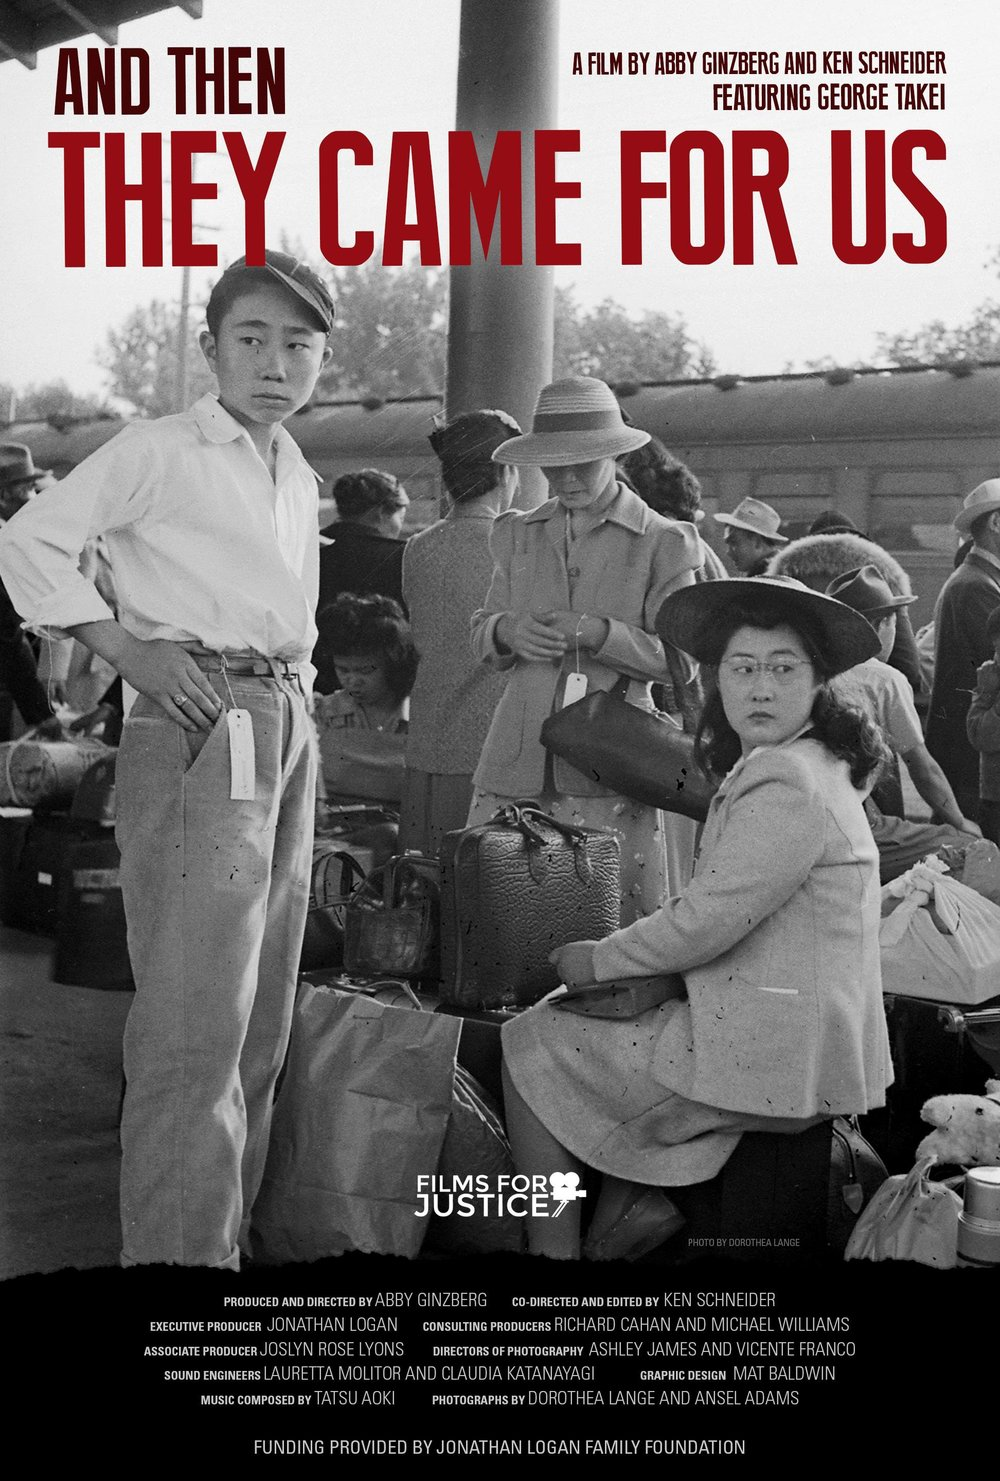 And Then They Came - Seventy-six years ago, Executive Order 9066 paved the way to the profound violation of constitutional rights that resulted in the forced incarceration of 120,000 Japanese Americans. Featuring George Takei and many others who were incarcerated, as well as newly rediscovered photographs of Dorothea Lange, And Then They Came for Us brings history into the present, retelling this difficult story and following Japanese American activists as they speak out against the Muslim registry and travel ban. Knowing our history is the first step to ensuring we do not repeat it. And Then They Came for Us is a cautionary and inspiring tale for these dark times.